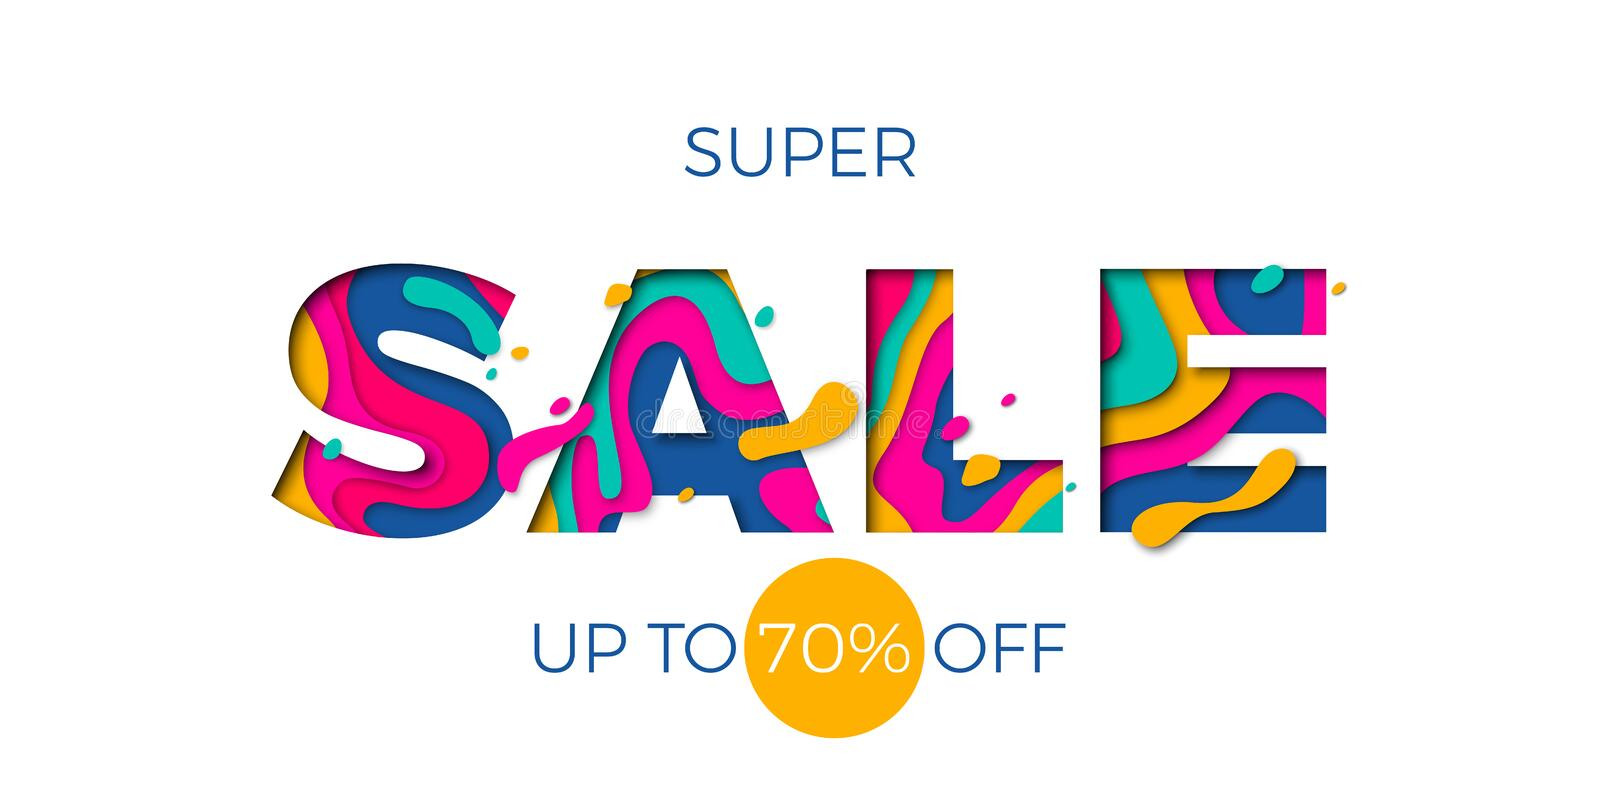 Winter sale banner seasonal holiday shopping discount promo vector offer stock illustration